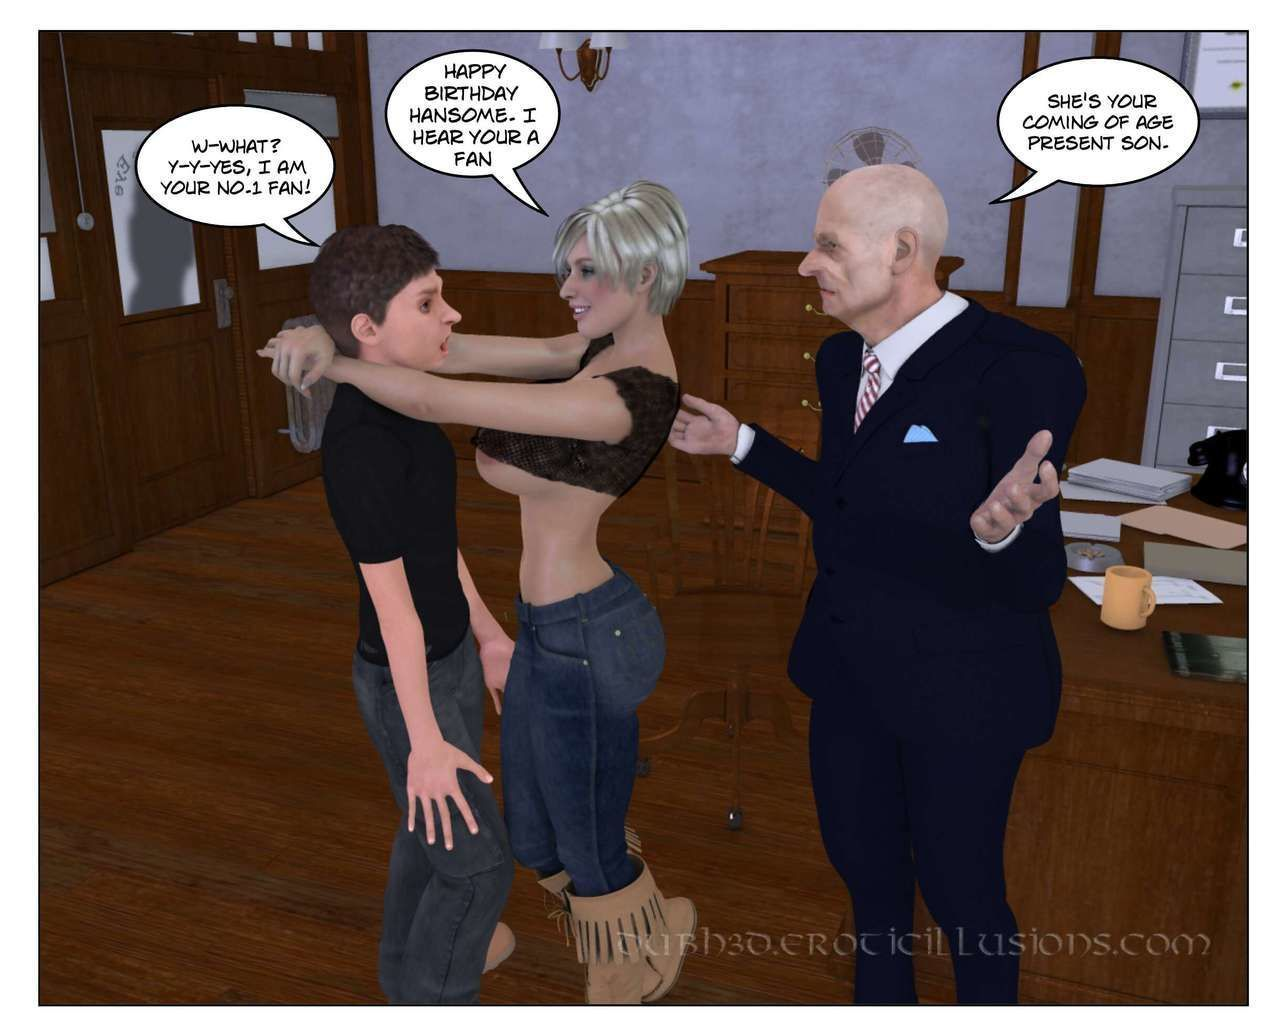 Dubhgilla - Marie Claude - The Proposal And Introduction - part 2